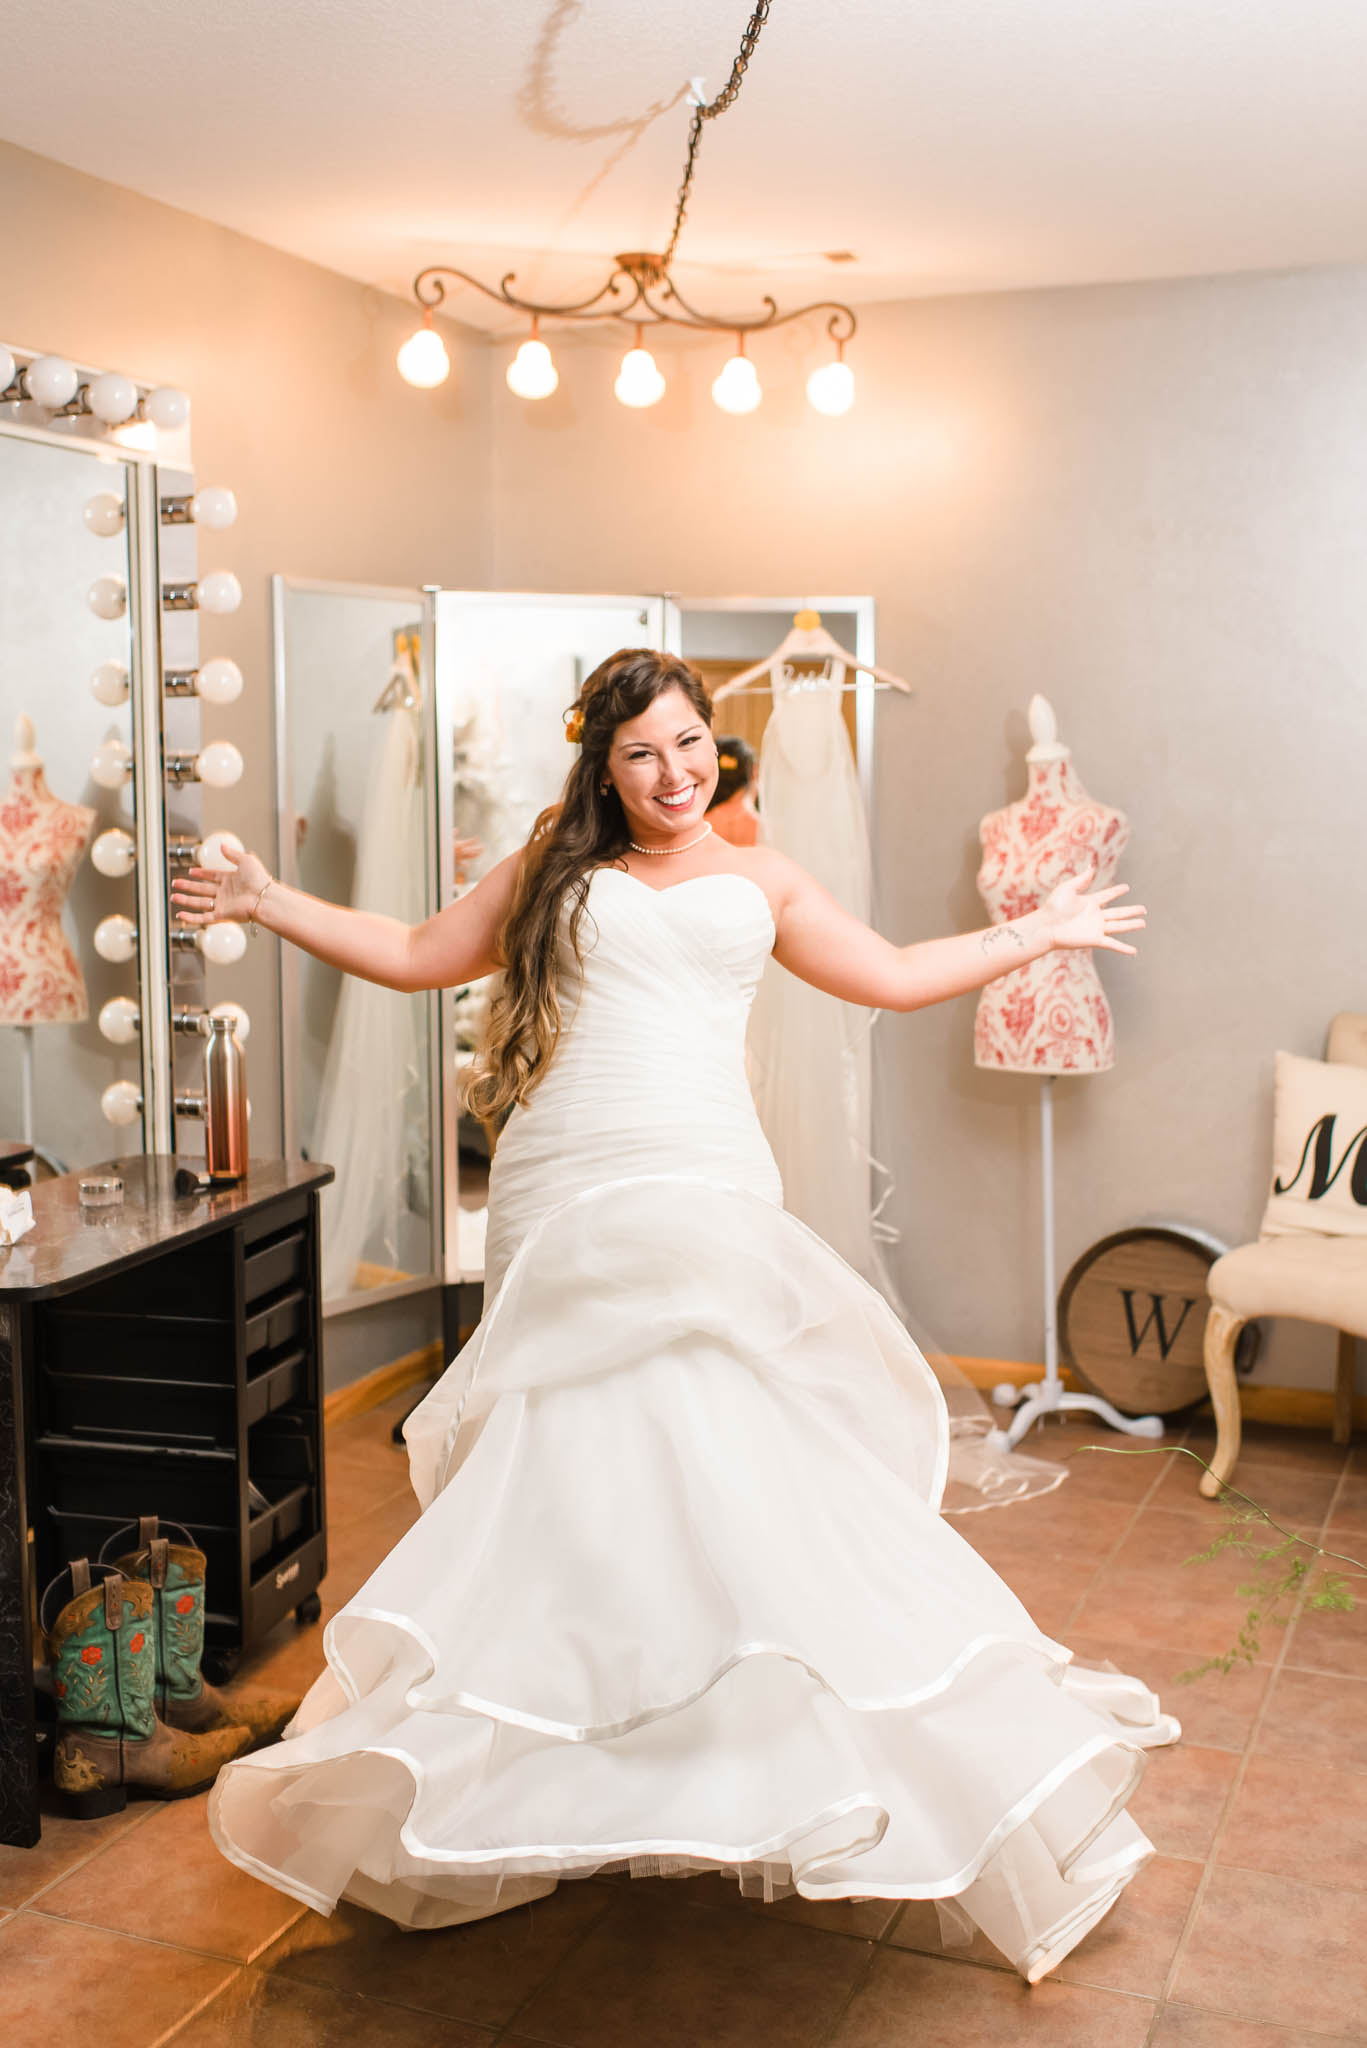 bride doing a little happy dance in her wedding dress